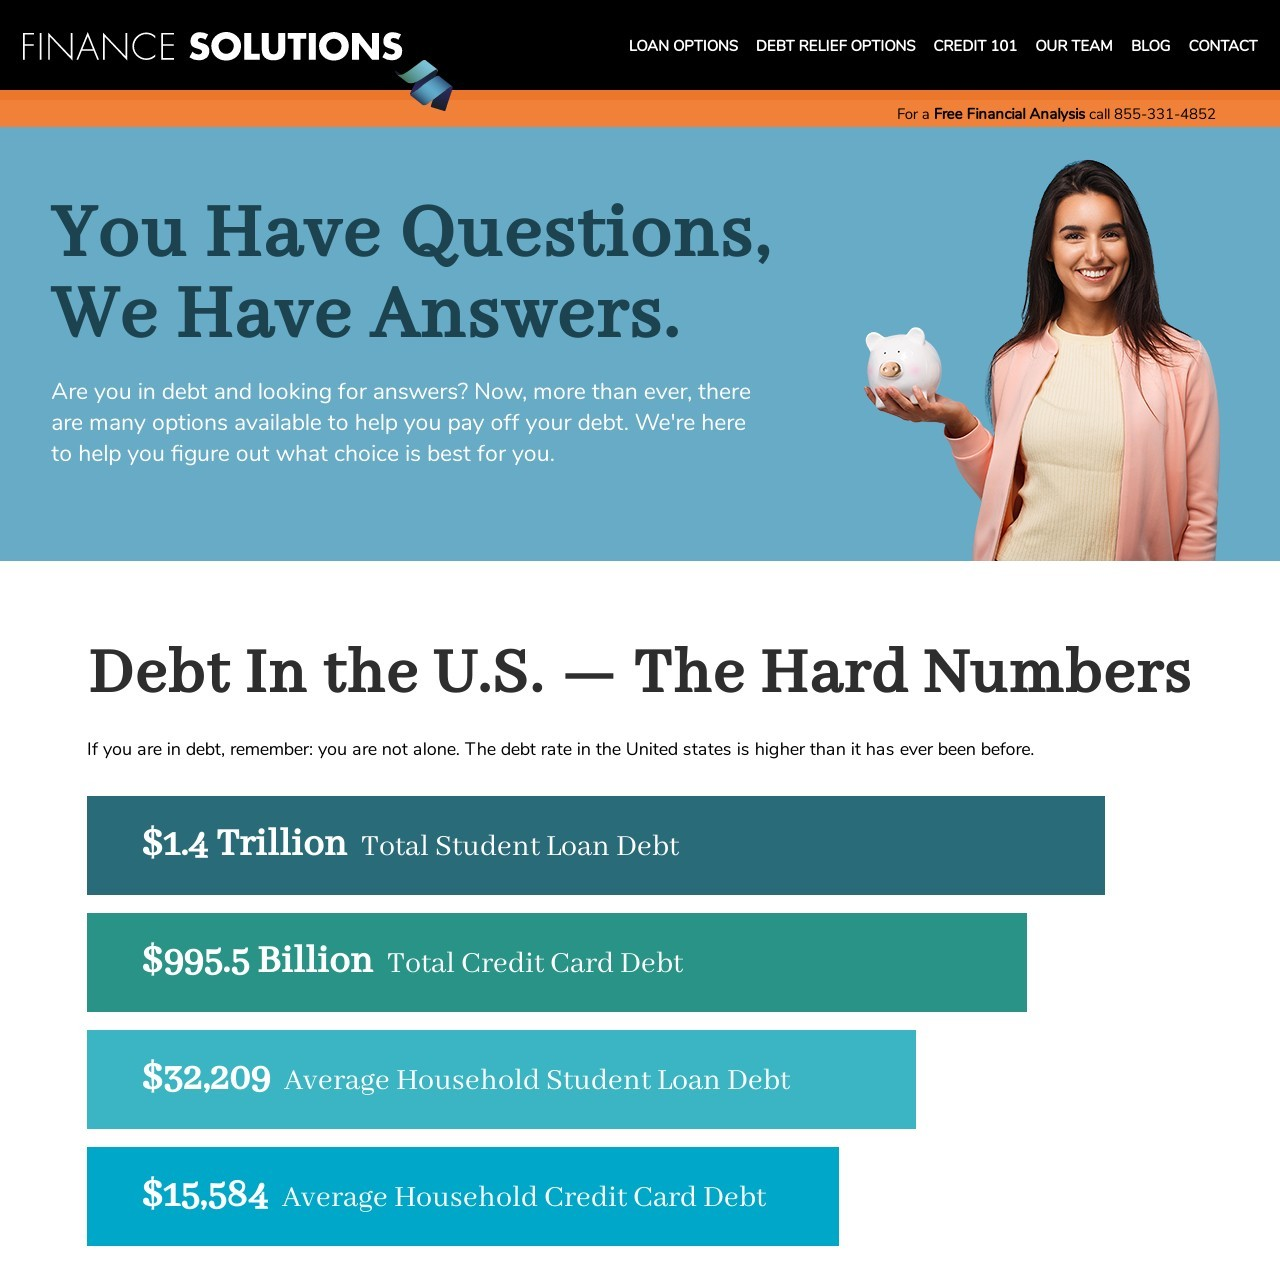 www.financesolutions.org